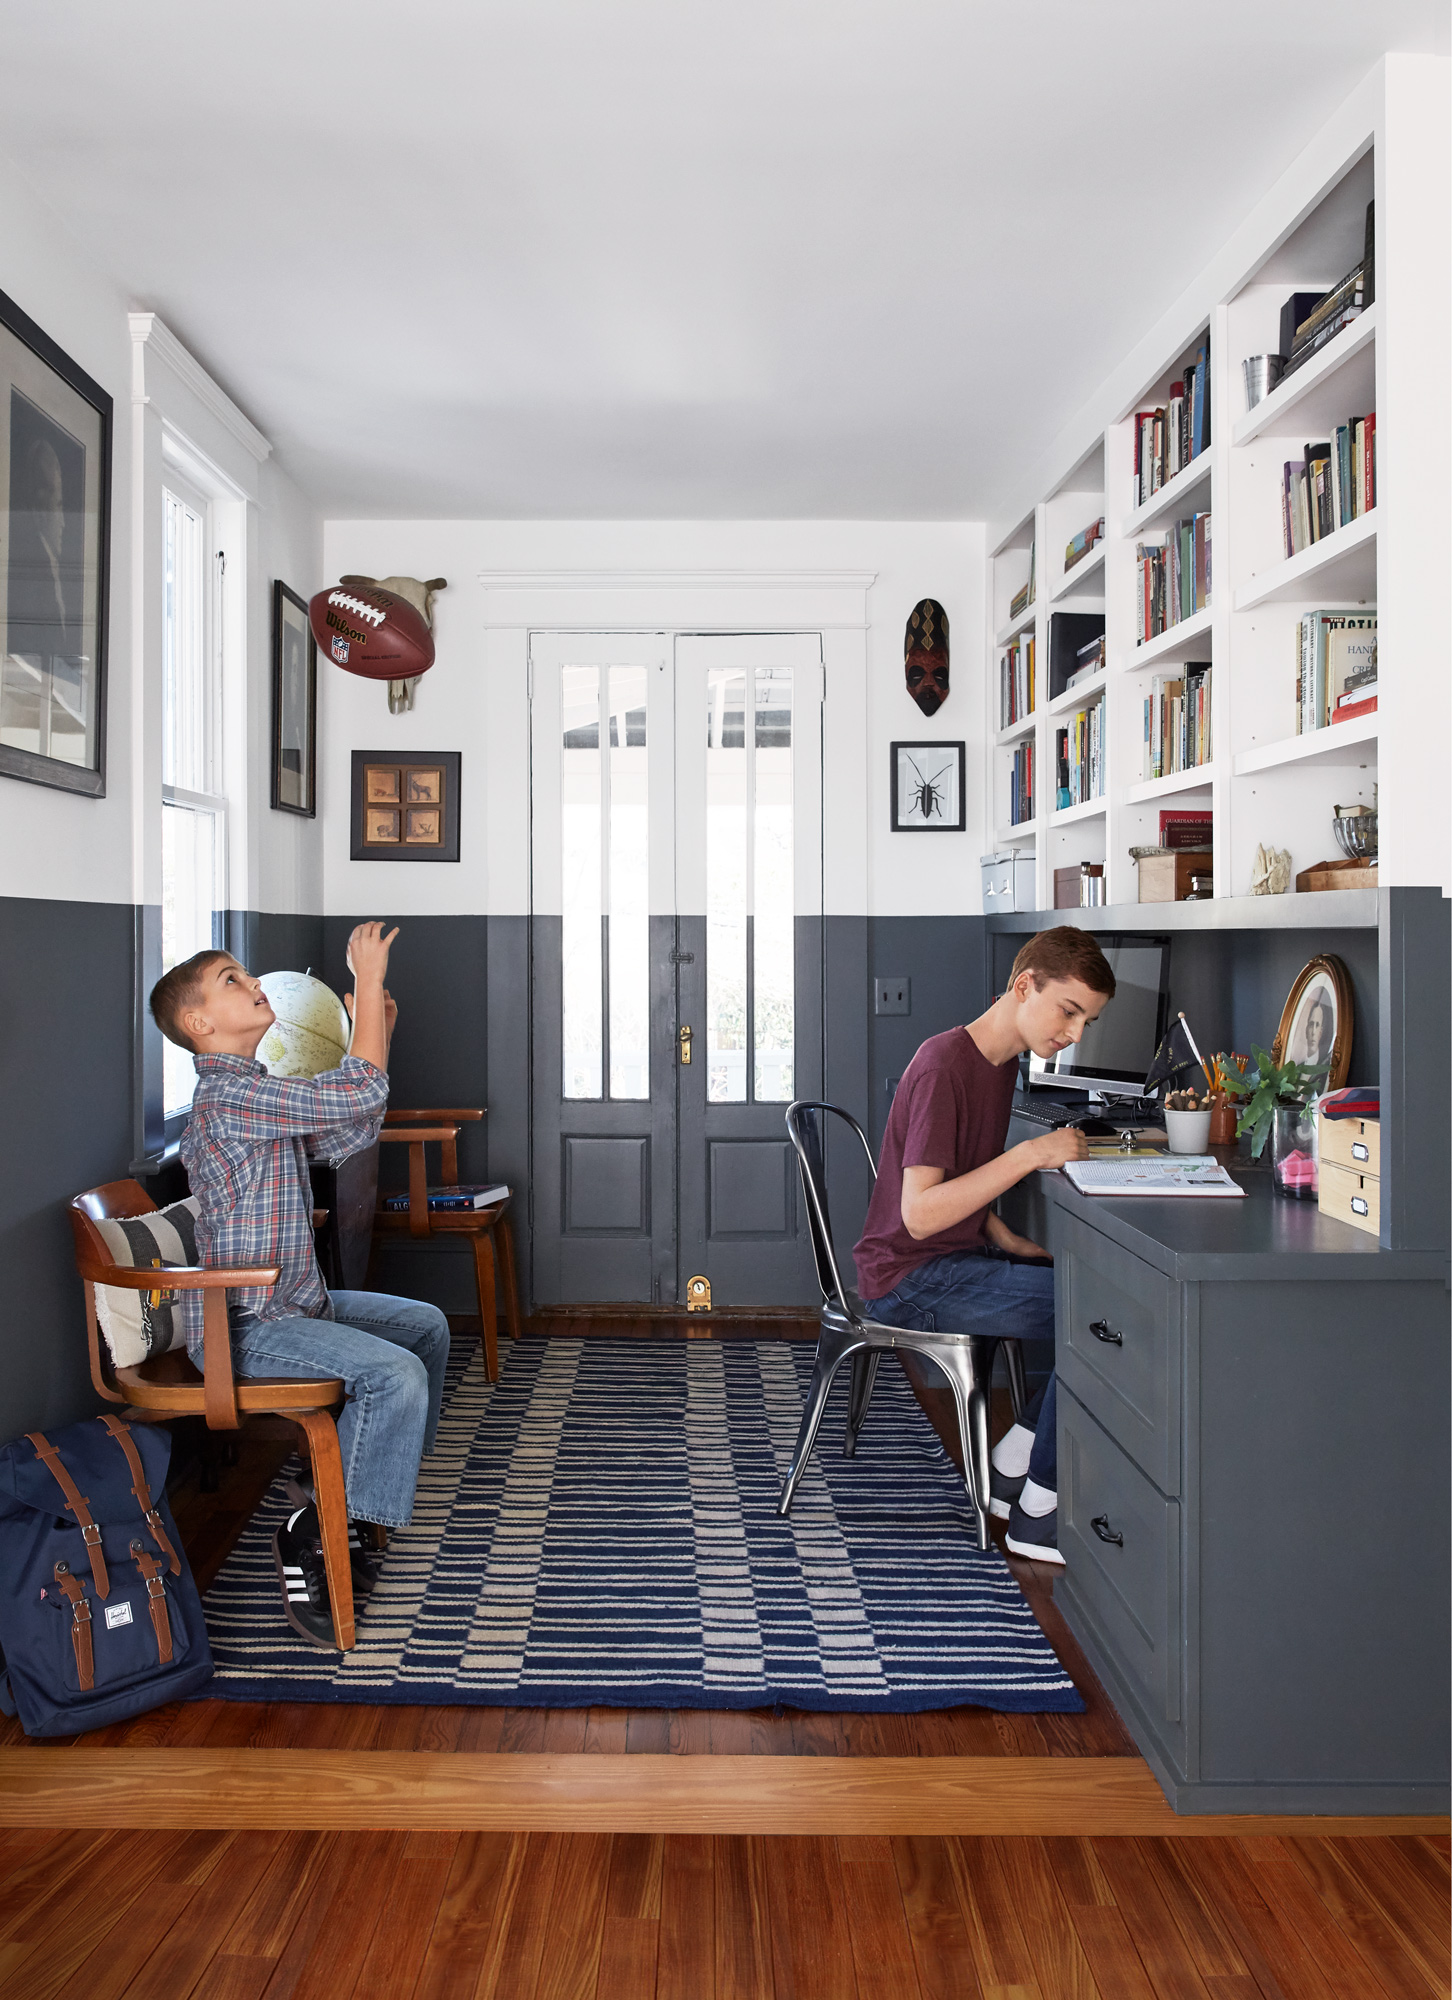 two-tone room boy on bench tossing football boy studying at desk